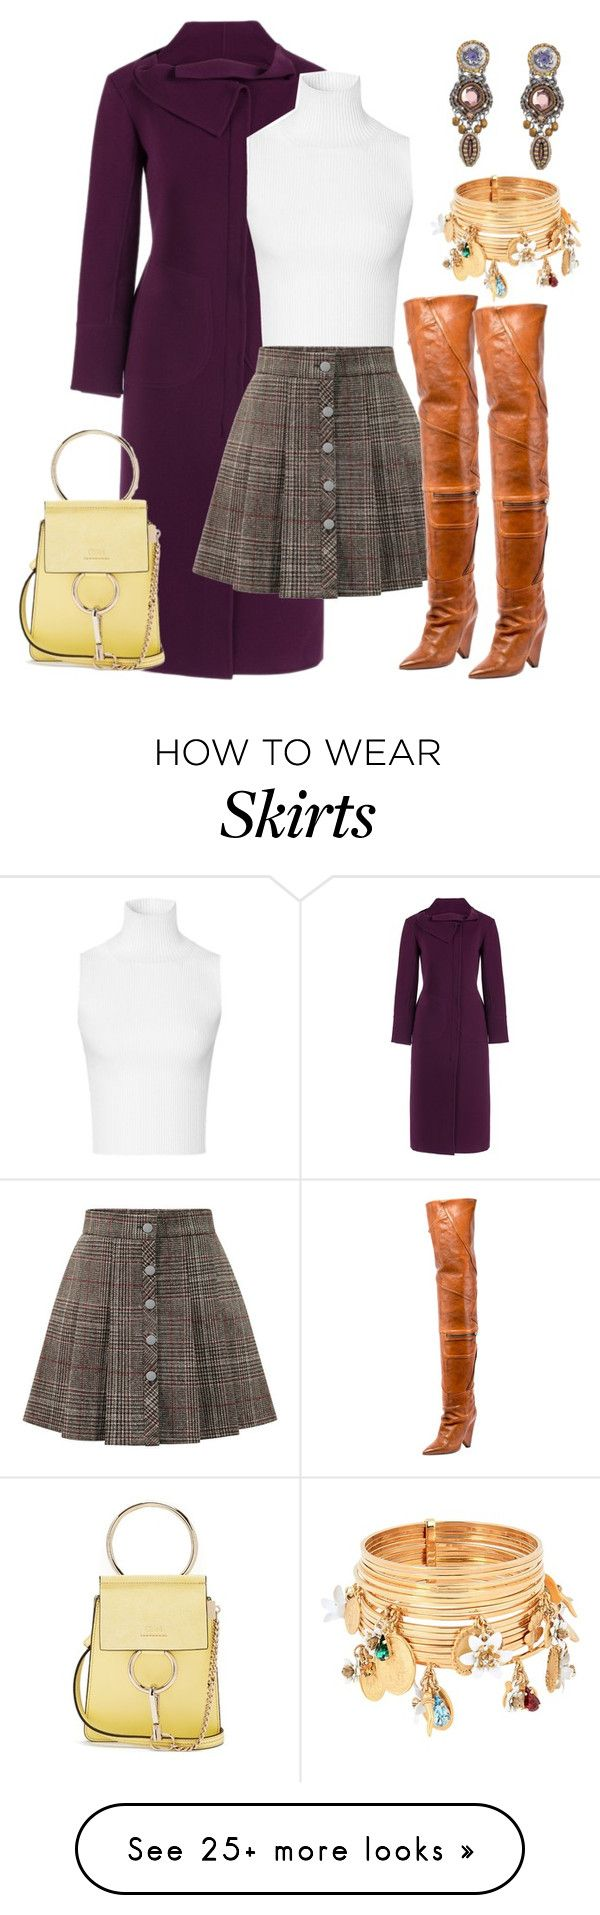 """short skirt and a looooooong jacket"" by katieball4 on Polyvore featuring Roland Mouret, WithChic, Yves Saint Laurent, Chloé, Ayala Bar and Dolce&Gabbana"